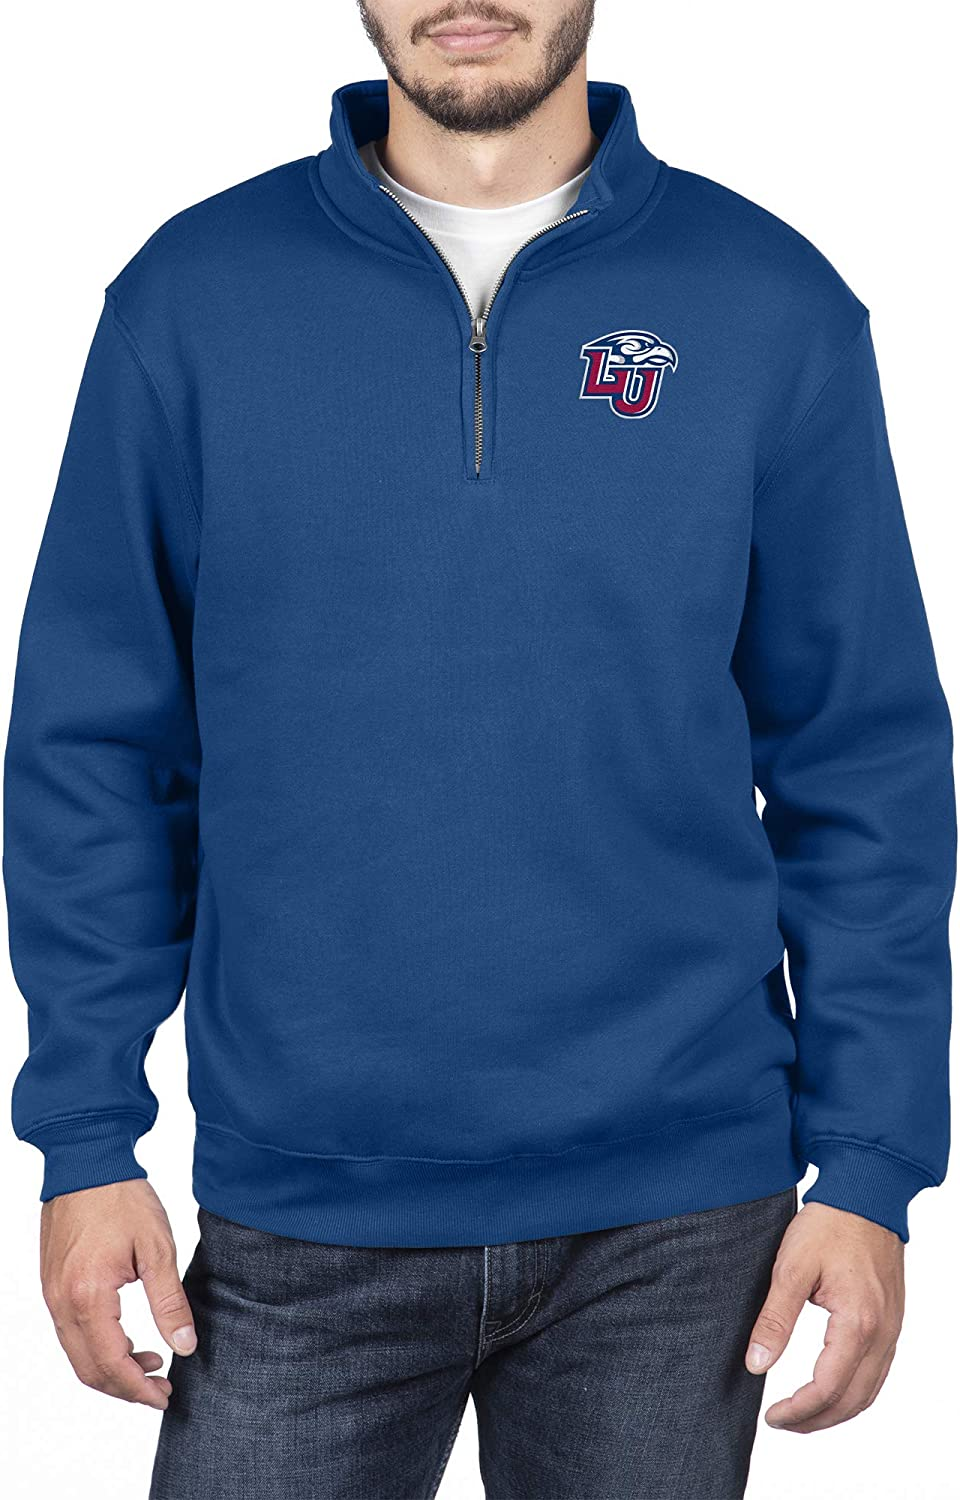 Top of the World NCAA Mens Team Color Hoodie Sweatshirt